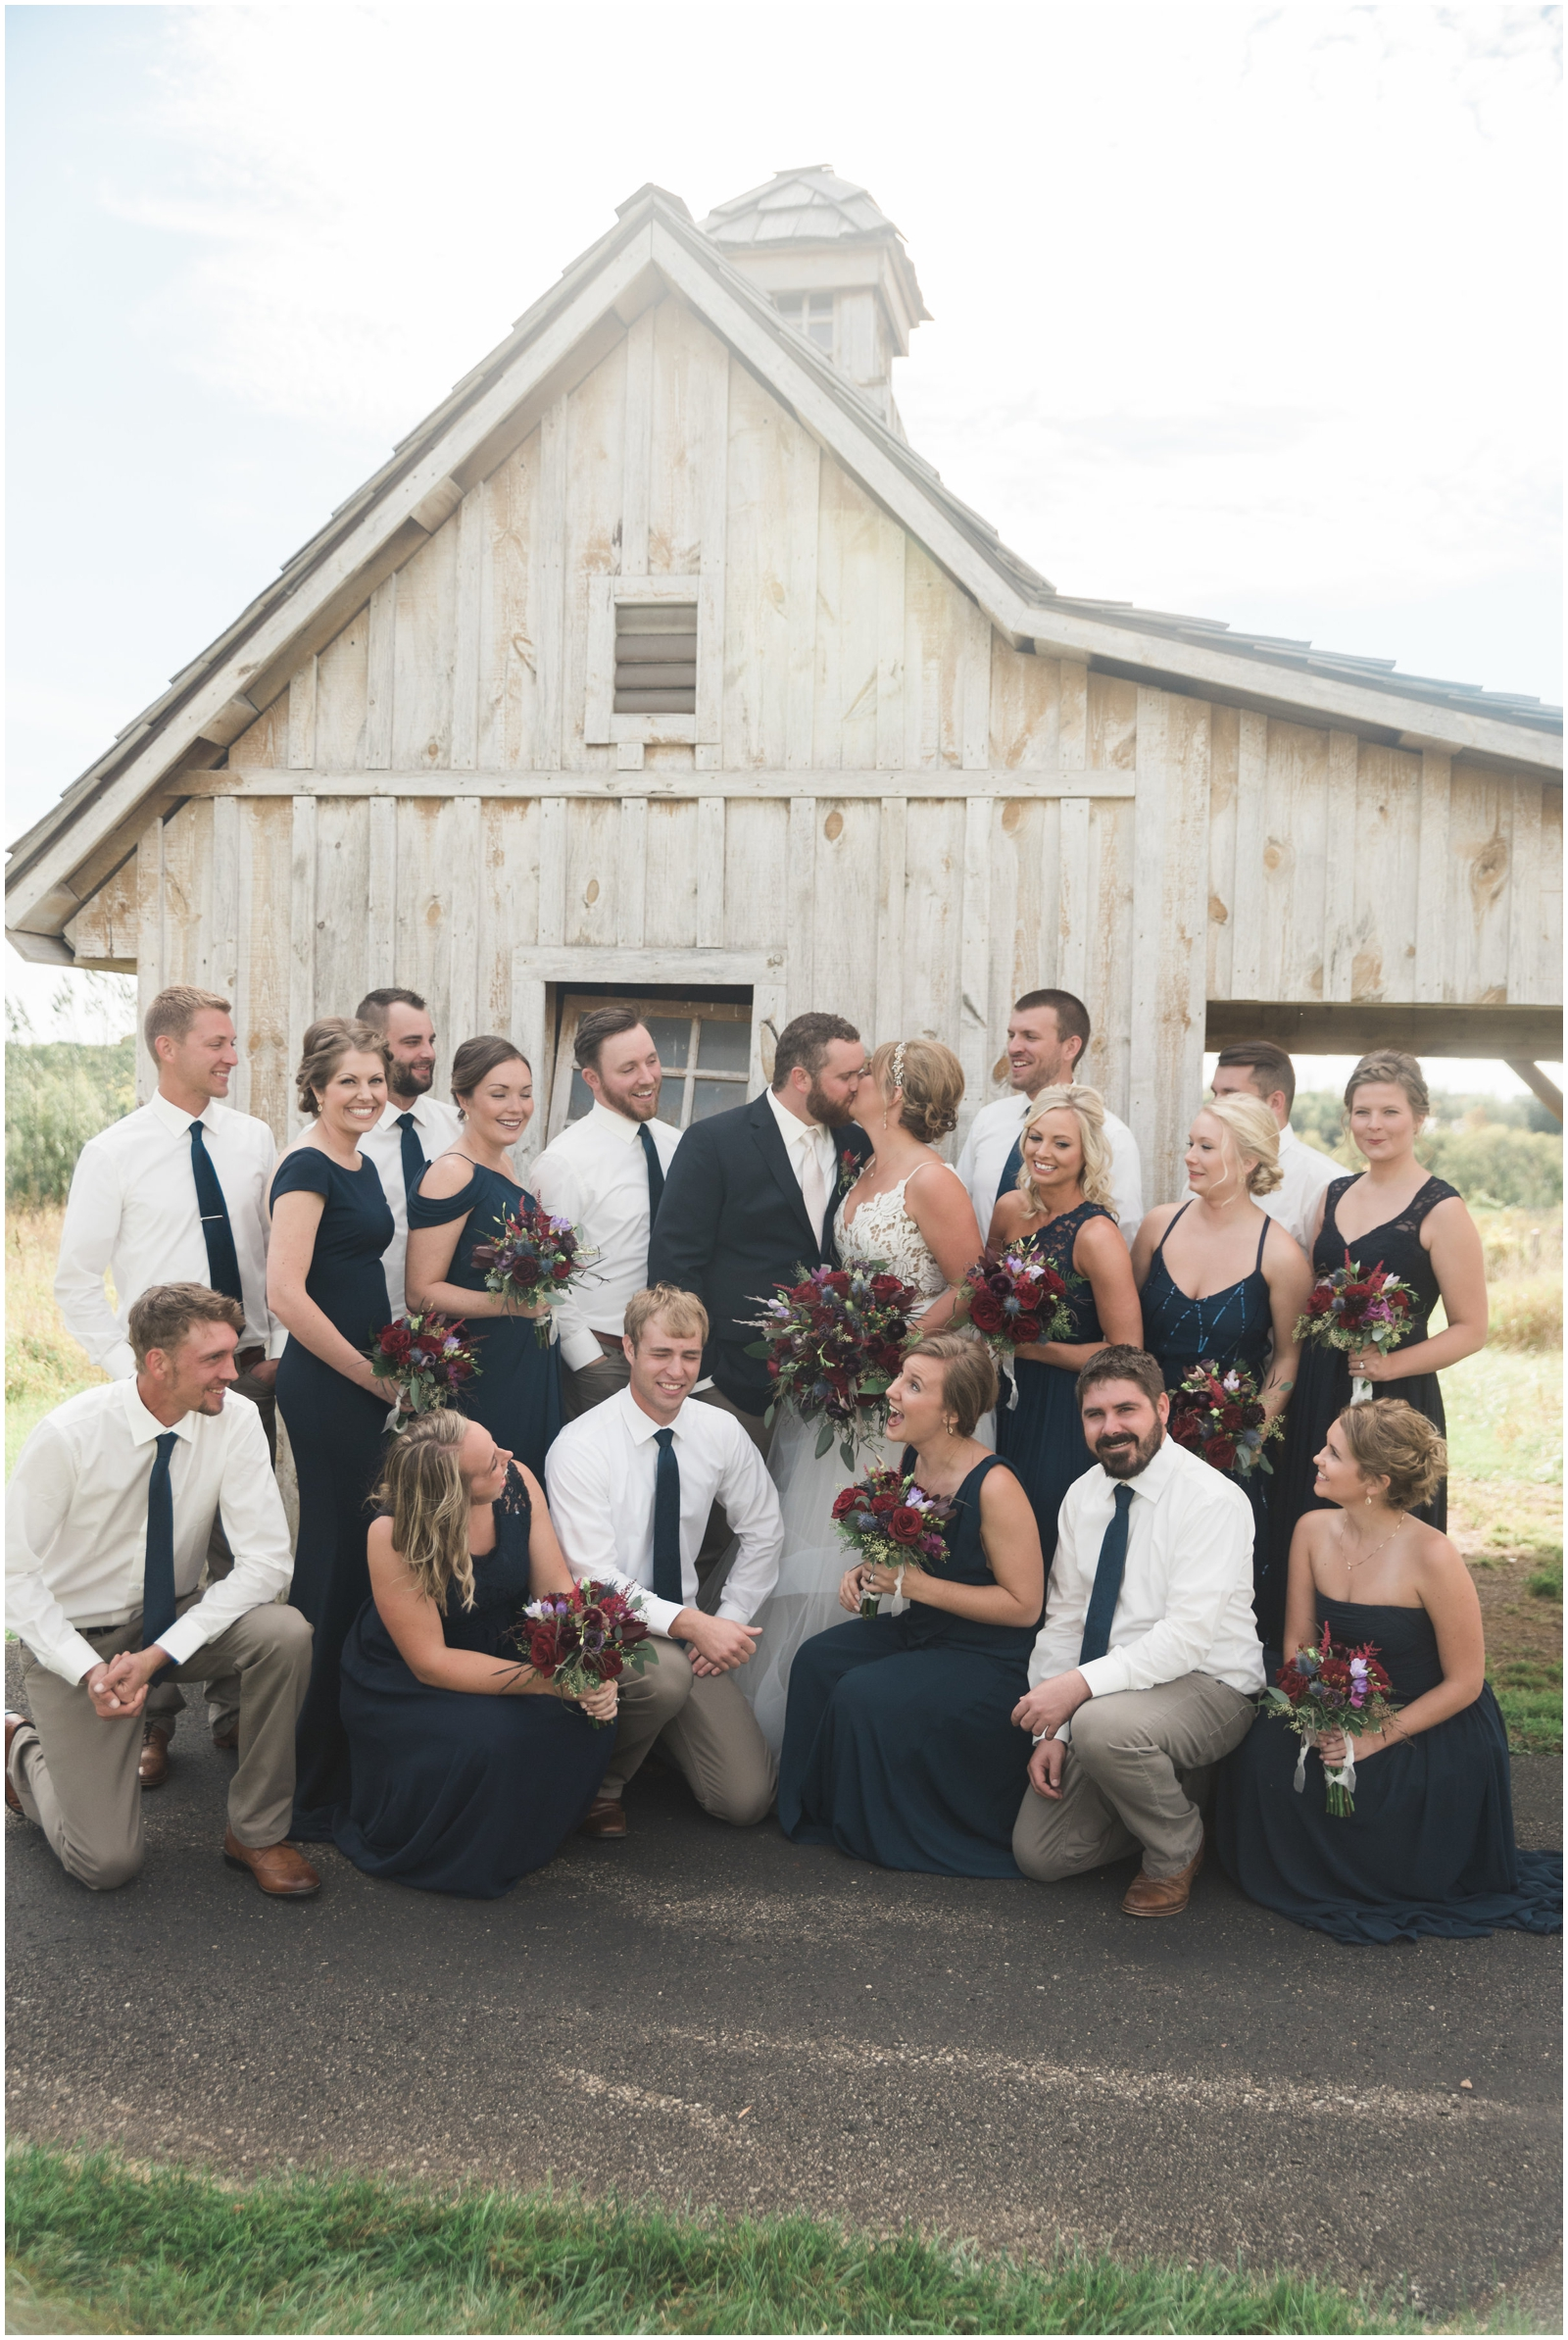 Minnesota-Wedding-Venue- Chaska-MN-Rustic-Barn-Weddings_0569.jpg